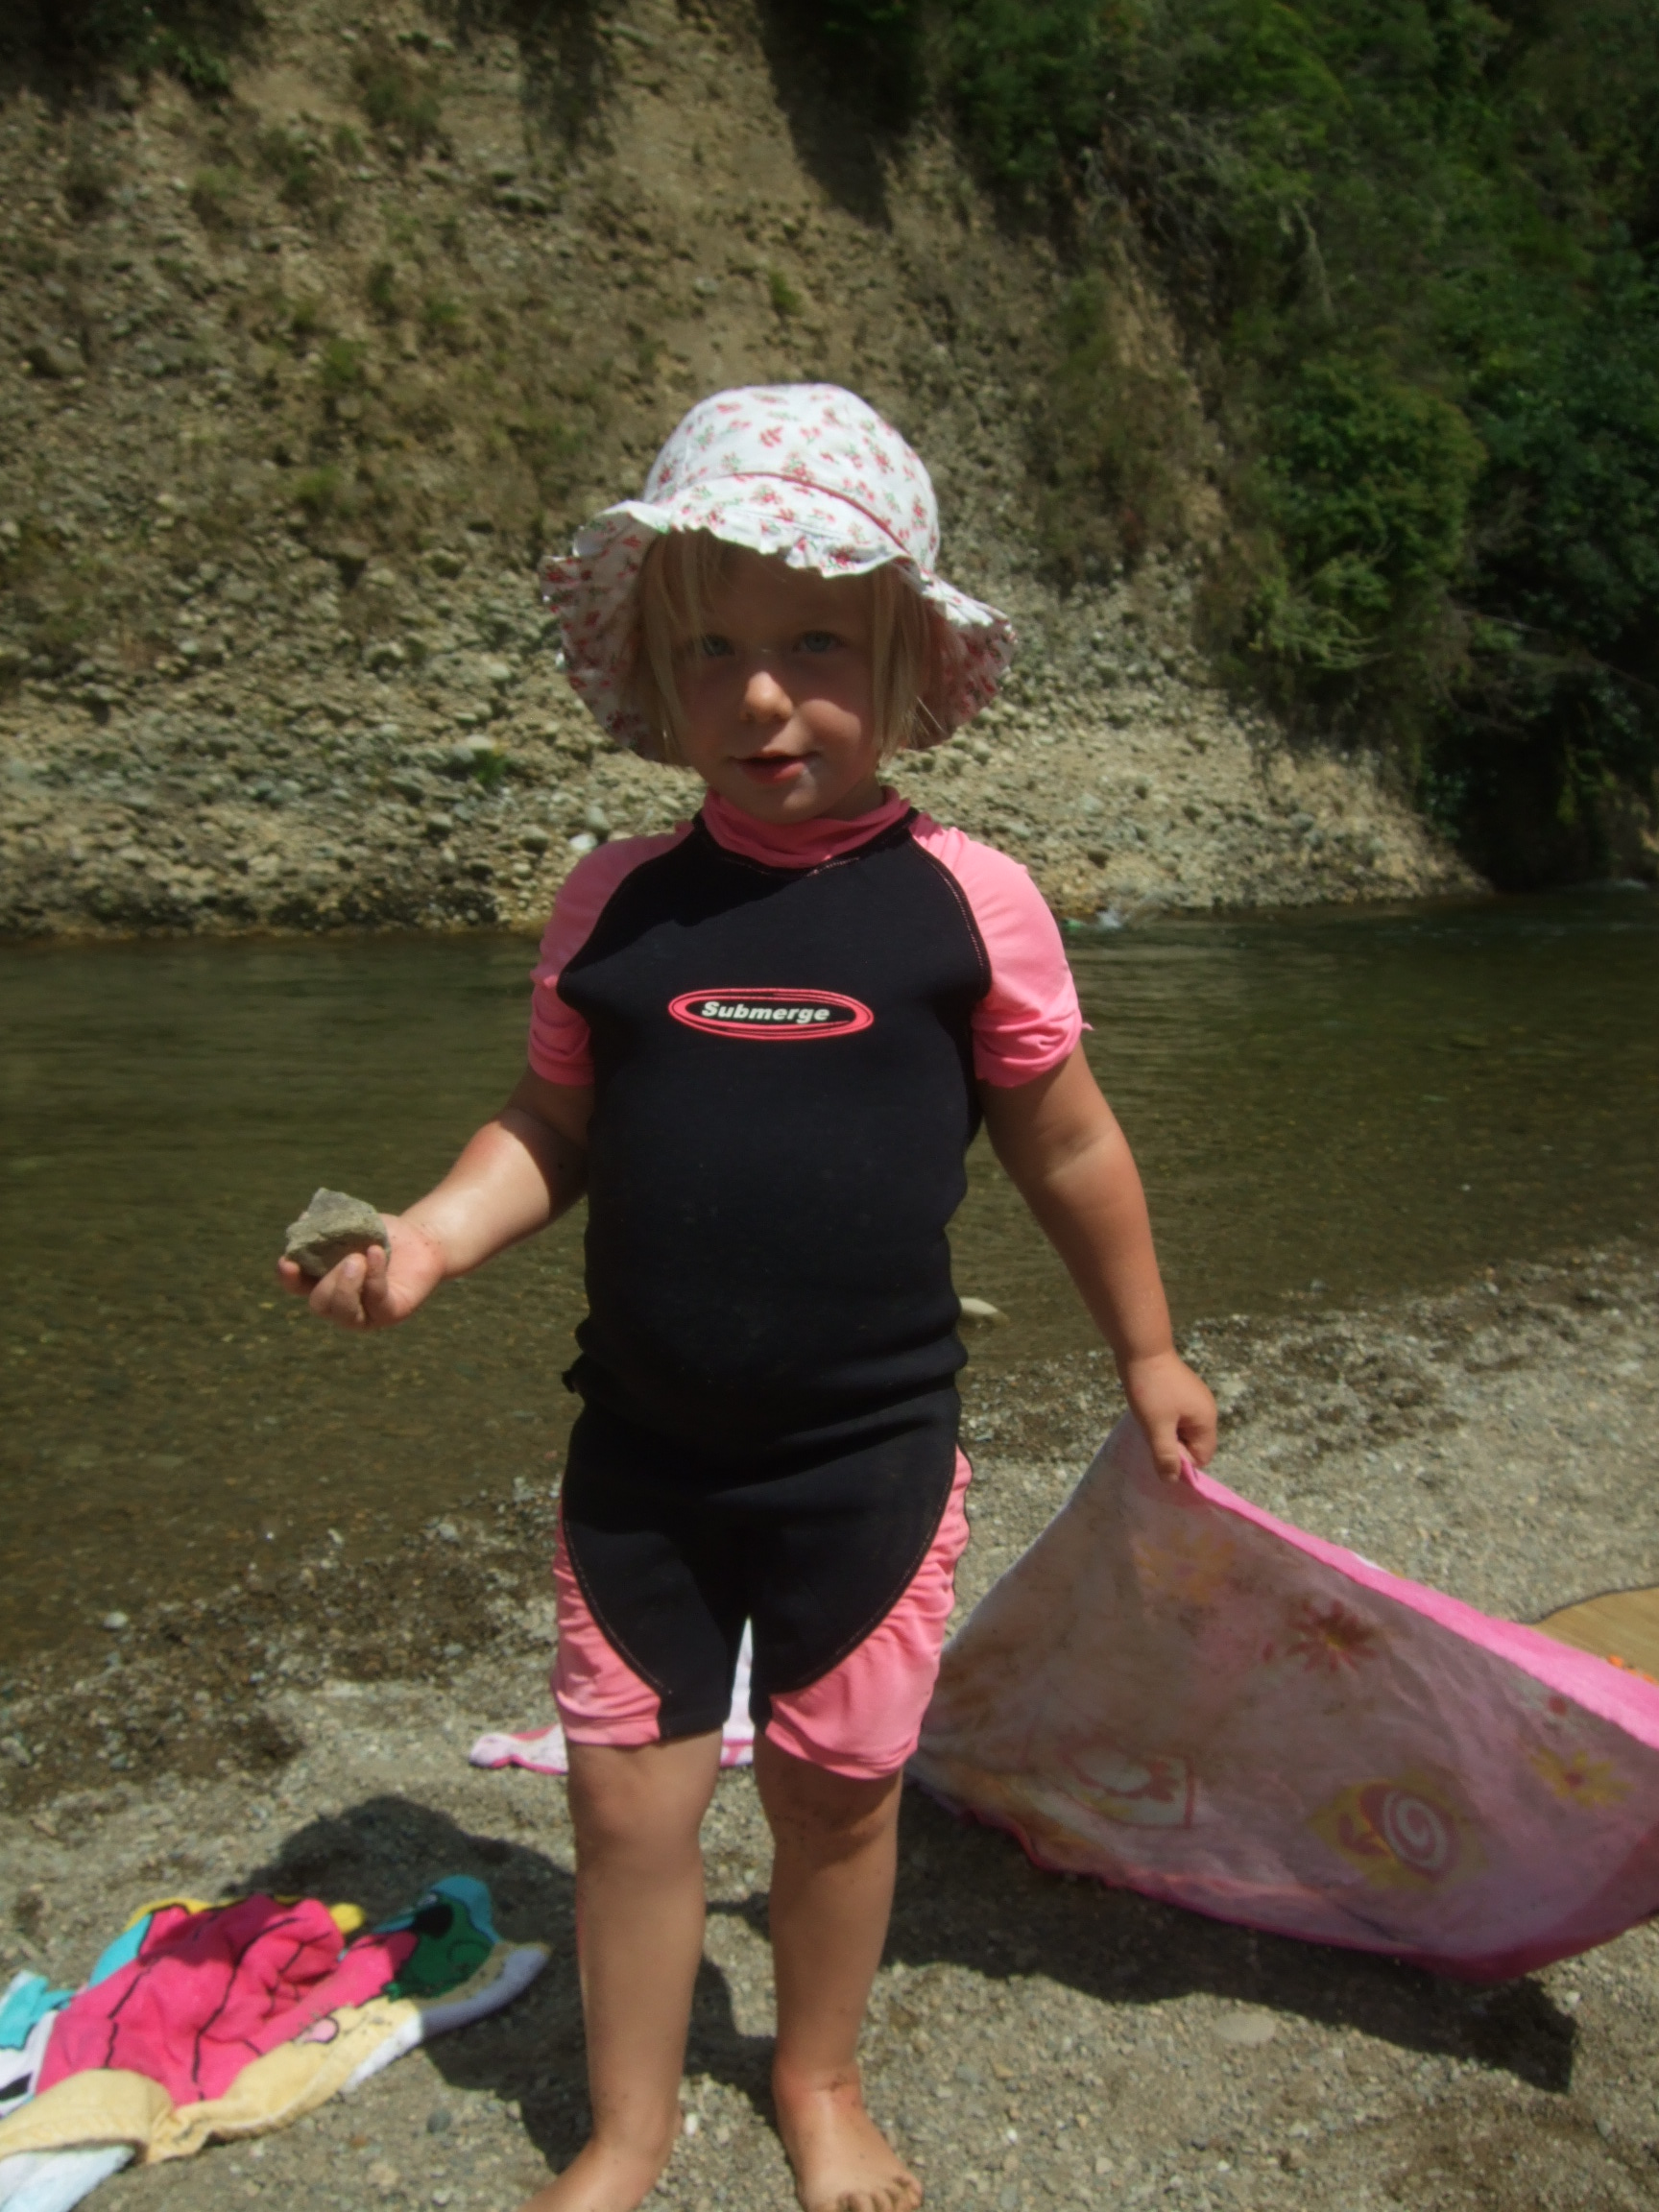 Back to the river for a swim